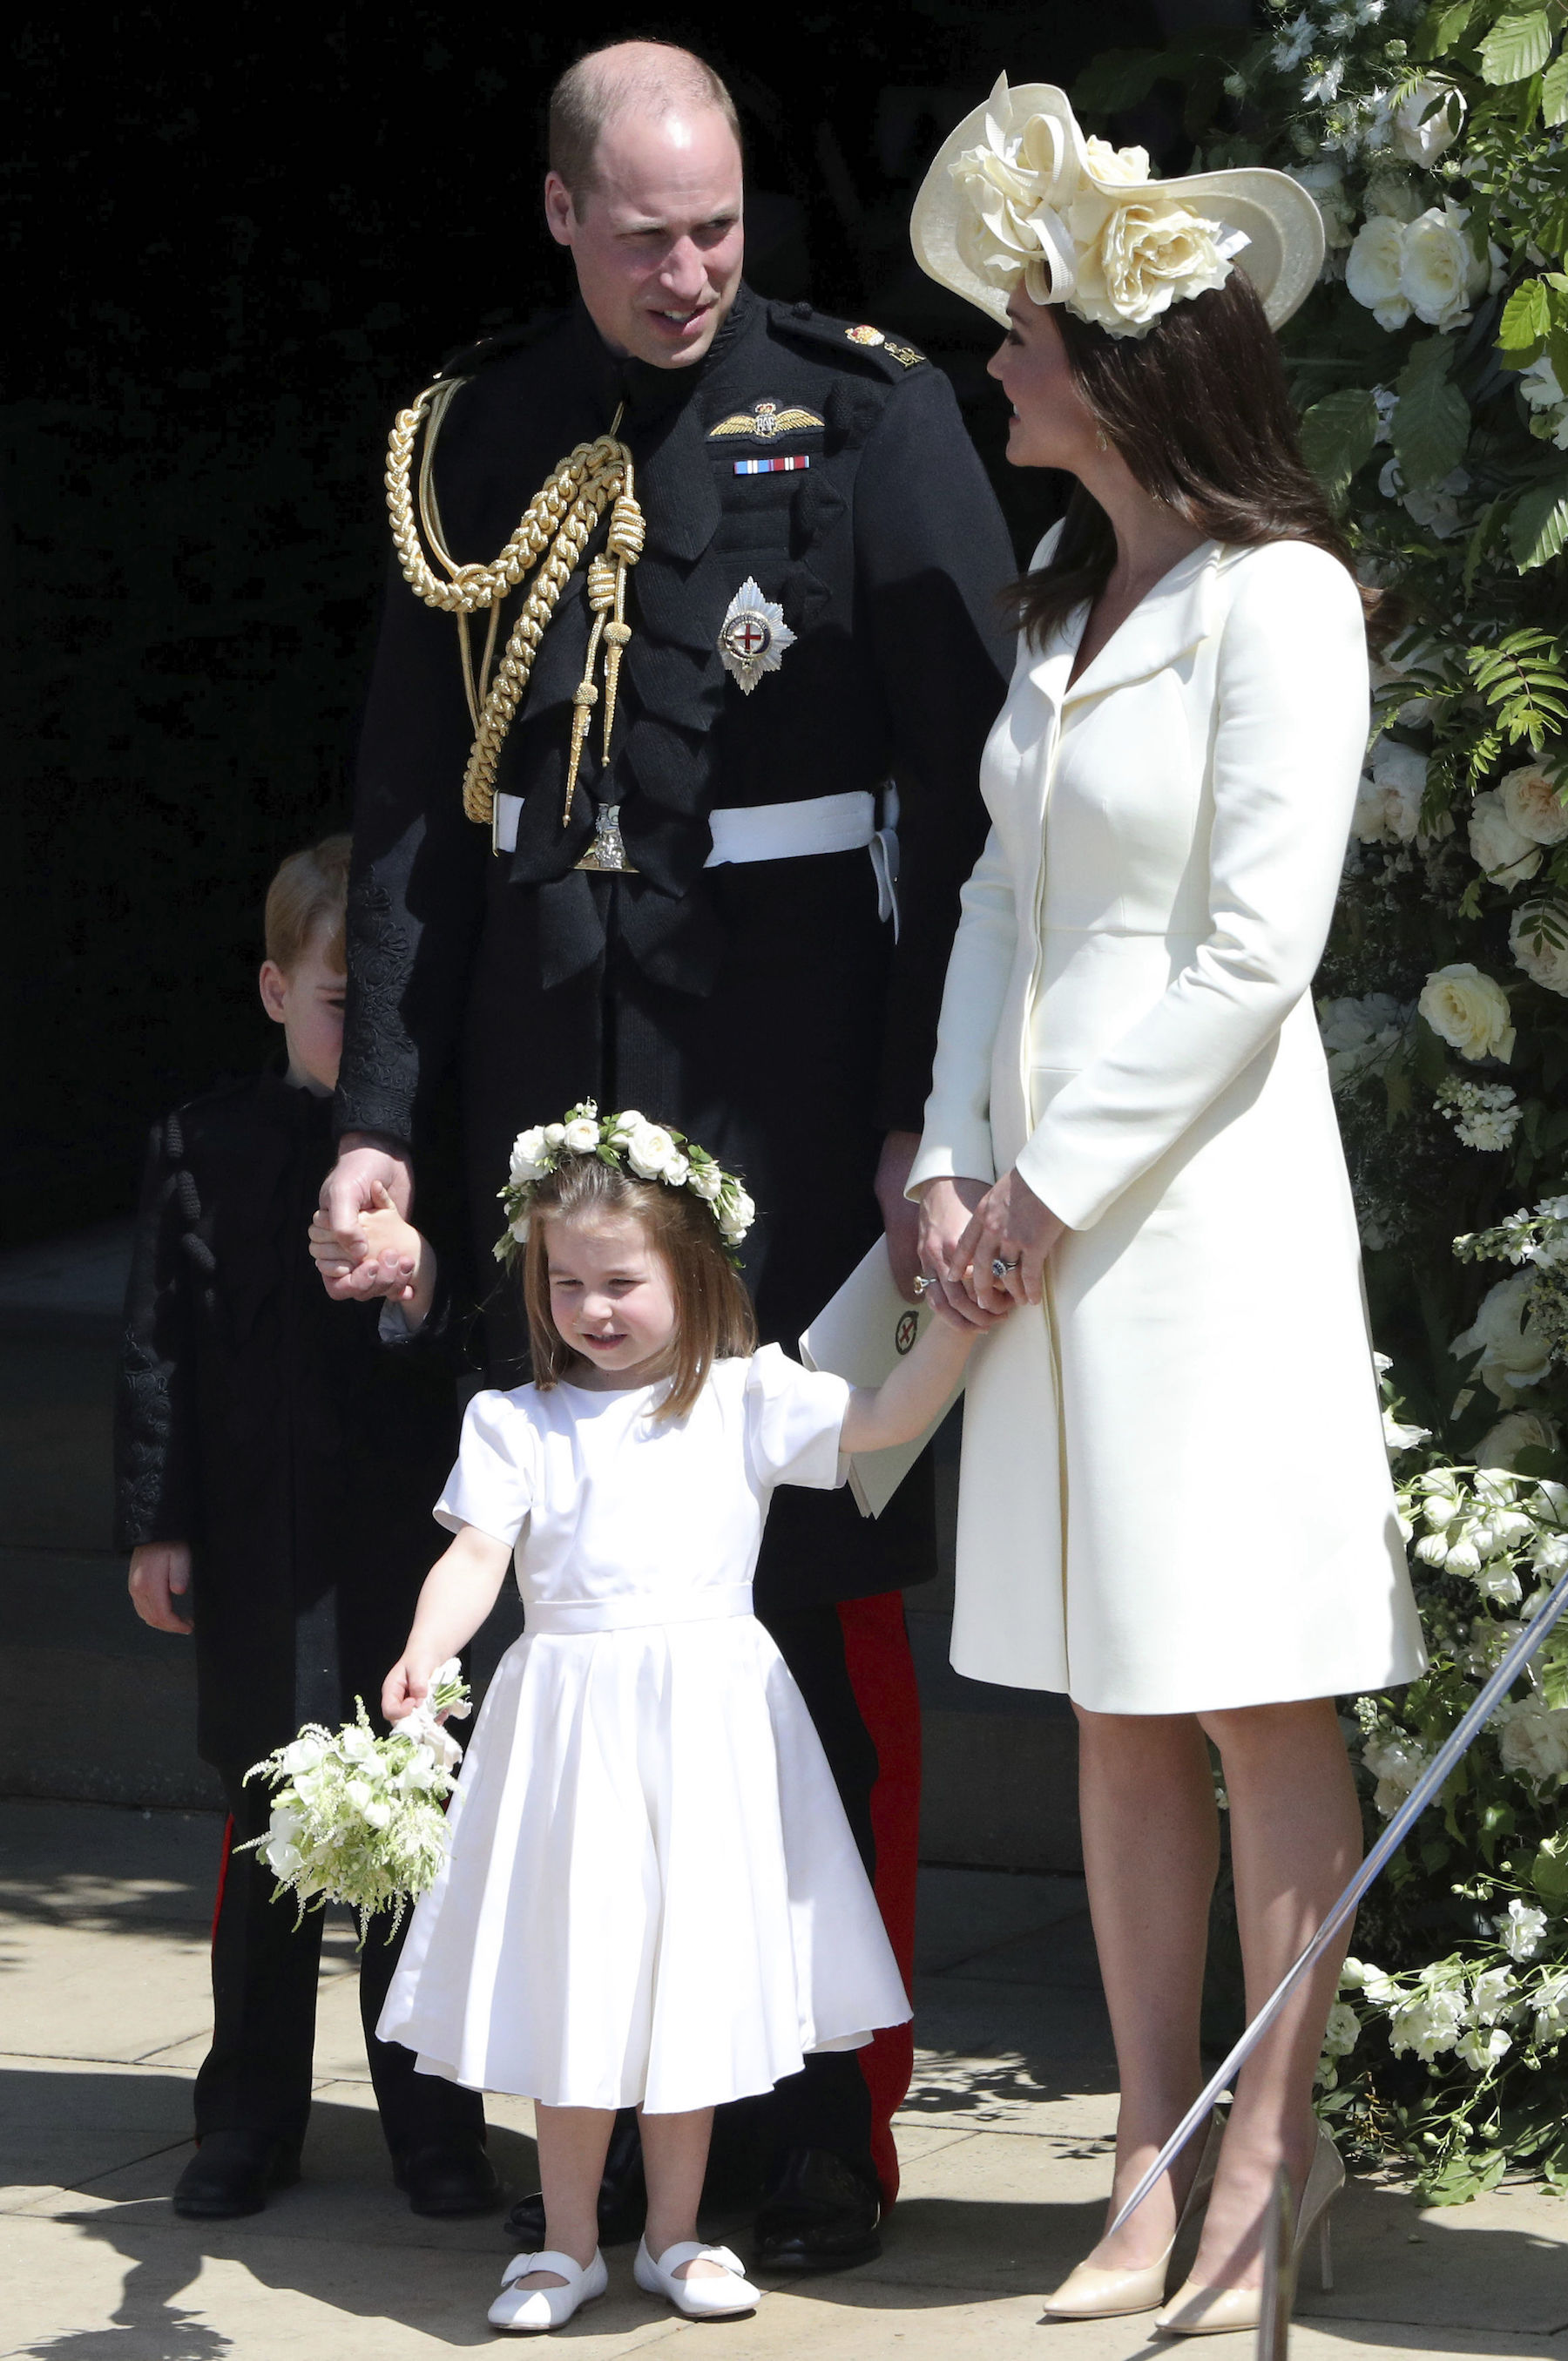 <div class='meta'><div class='origin-logo' data-origin='Creative Content'></div><span class='caption-text' data-credit='Andrew Matthews/PA Wire'>The Duke and Duchess of Cambridge with Prince George and Princess Charlotte leave St. George's Chapel in Windsor Castle after the wedding.</span></div>